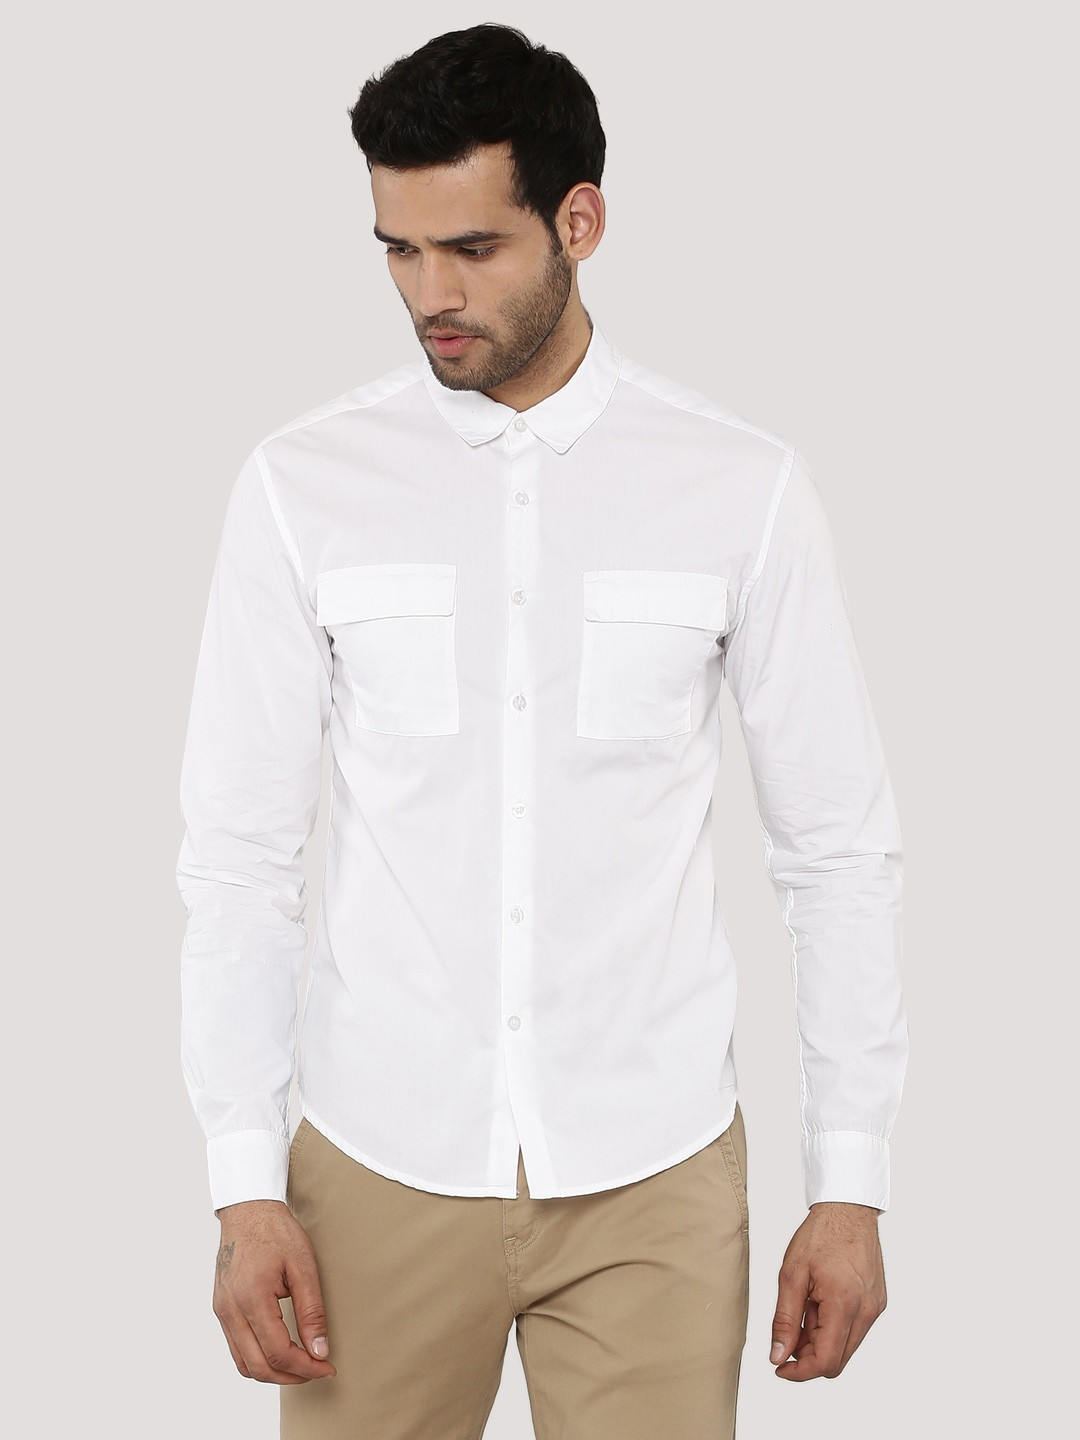 buy koovs multi pocket shirt for men men 39 s off white